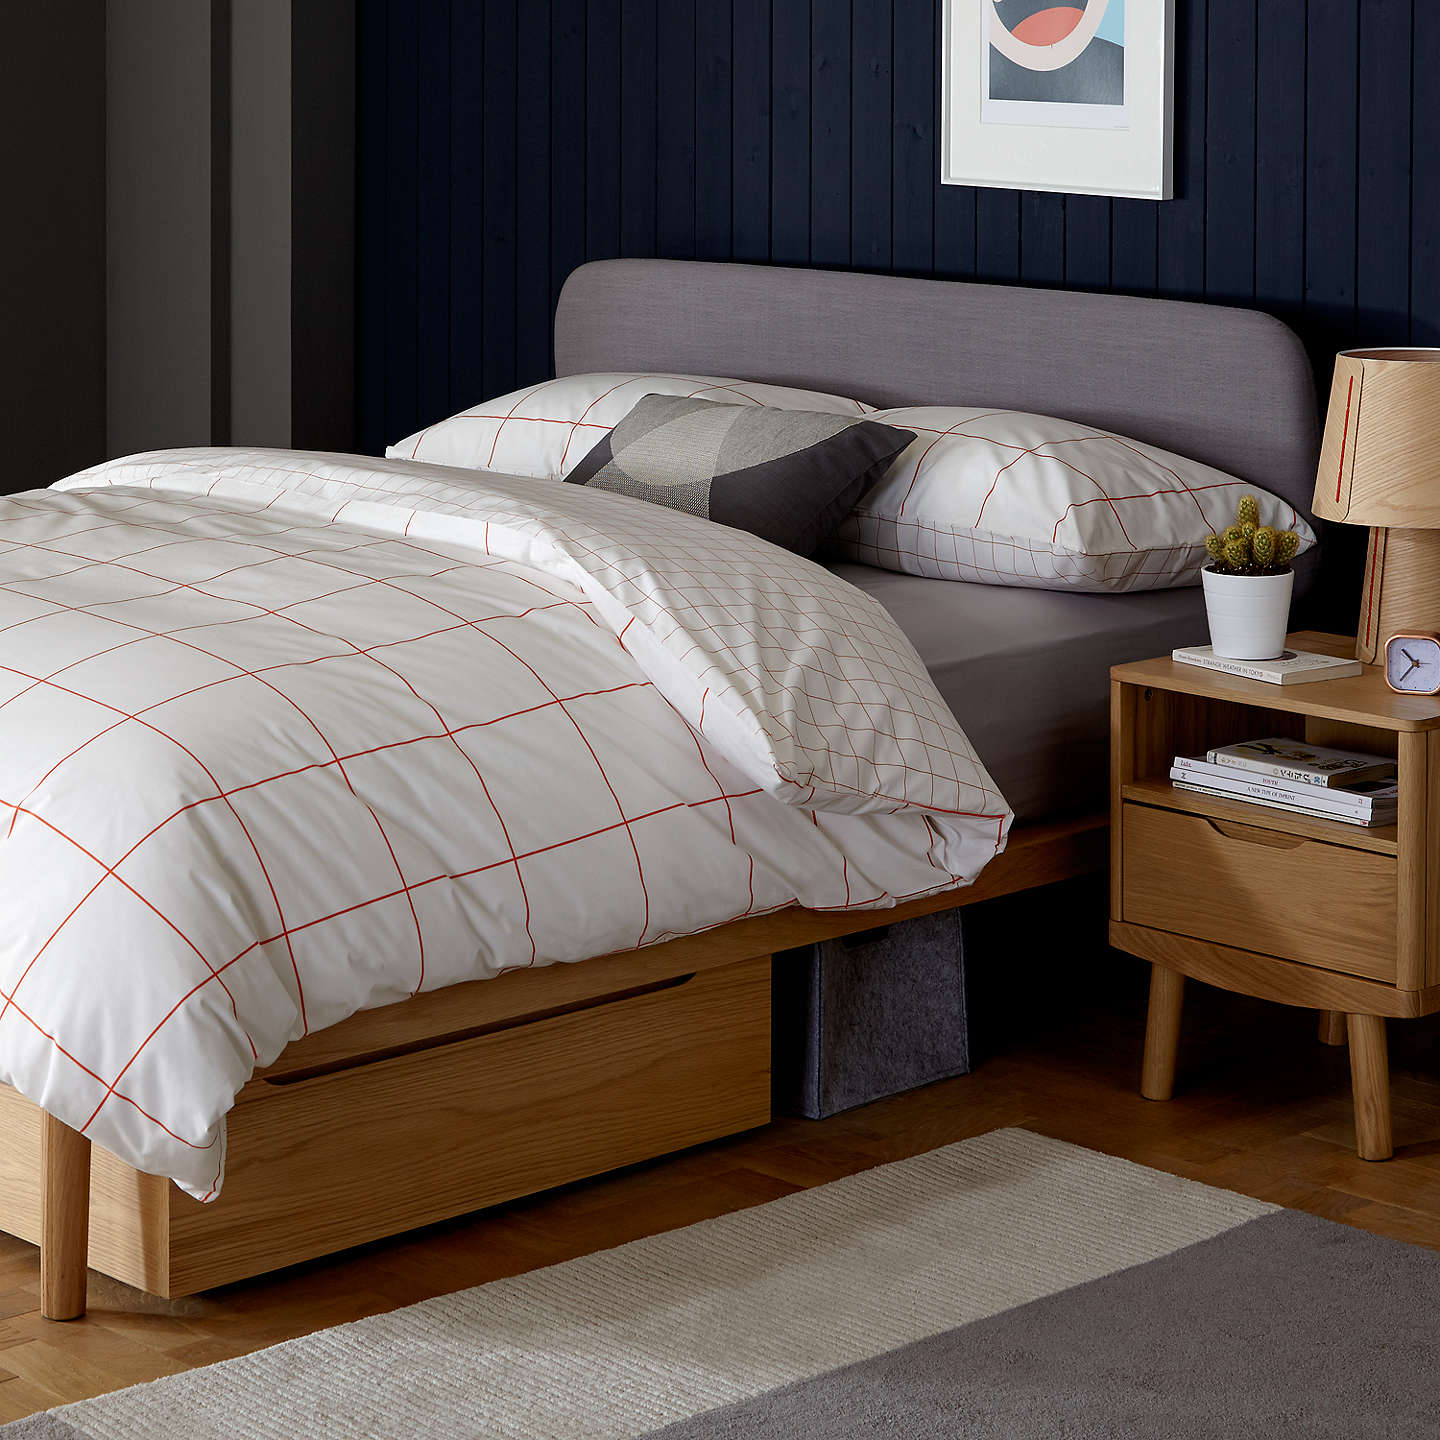 House By John Lewis Bow Upholstered Headboard Bed Frame King Size Natural Online At